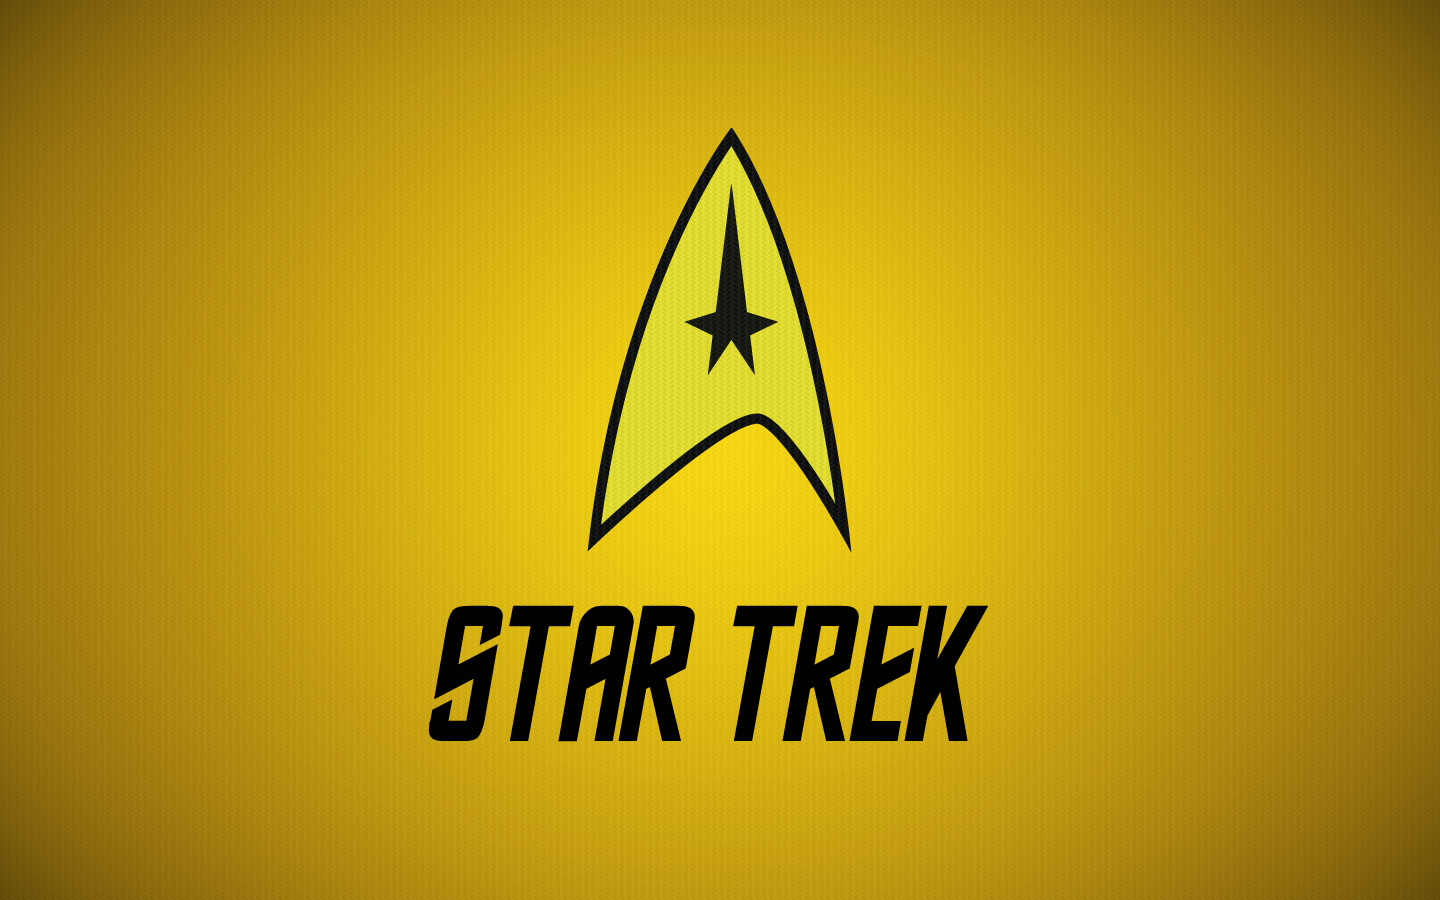 Star-Trek-Logo-star-trek-original-series-19173893-1440-900